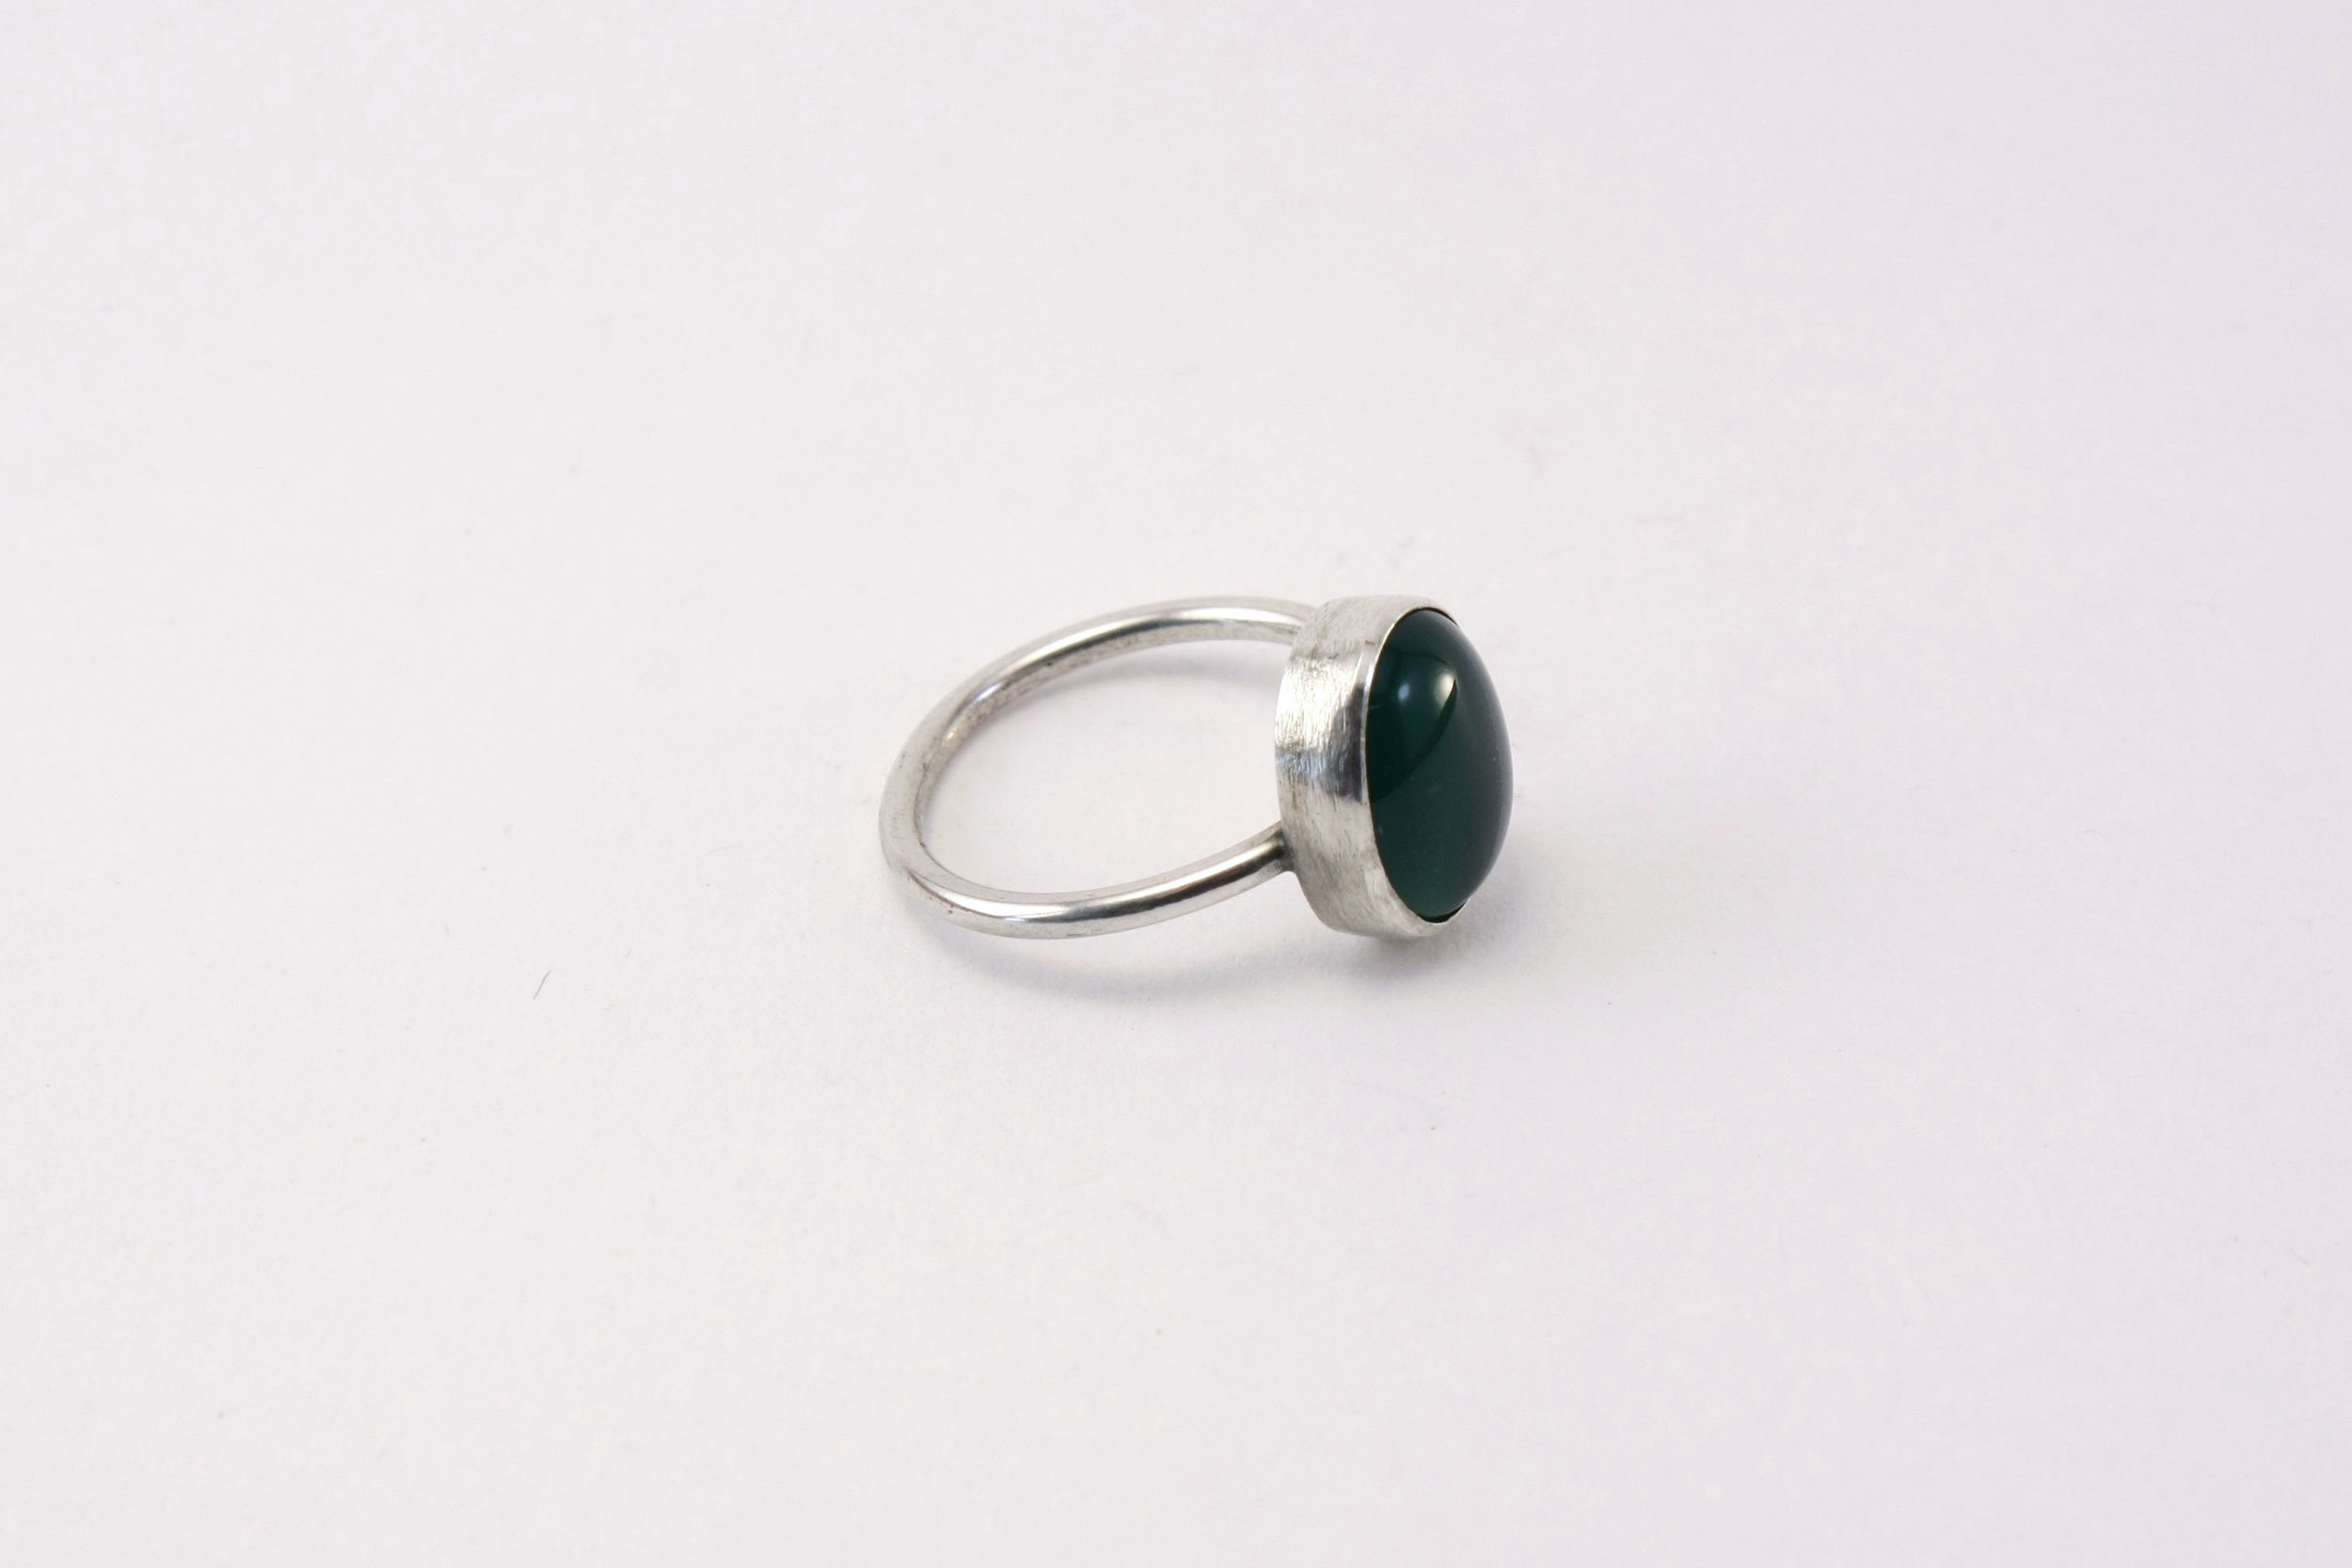 GREEN_RING_SIZE 5.5_5.jpg